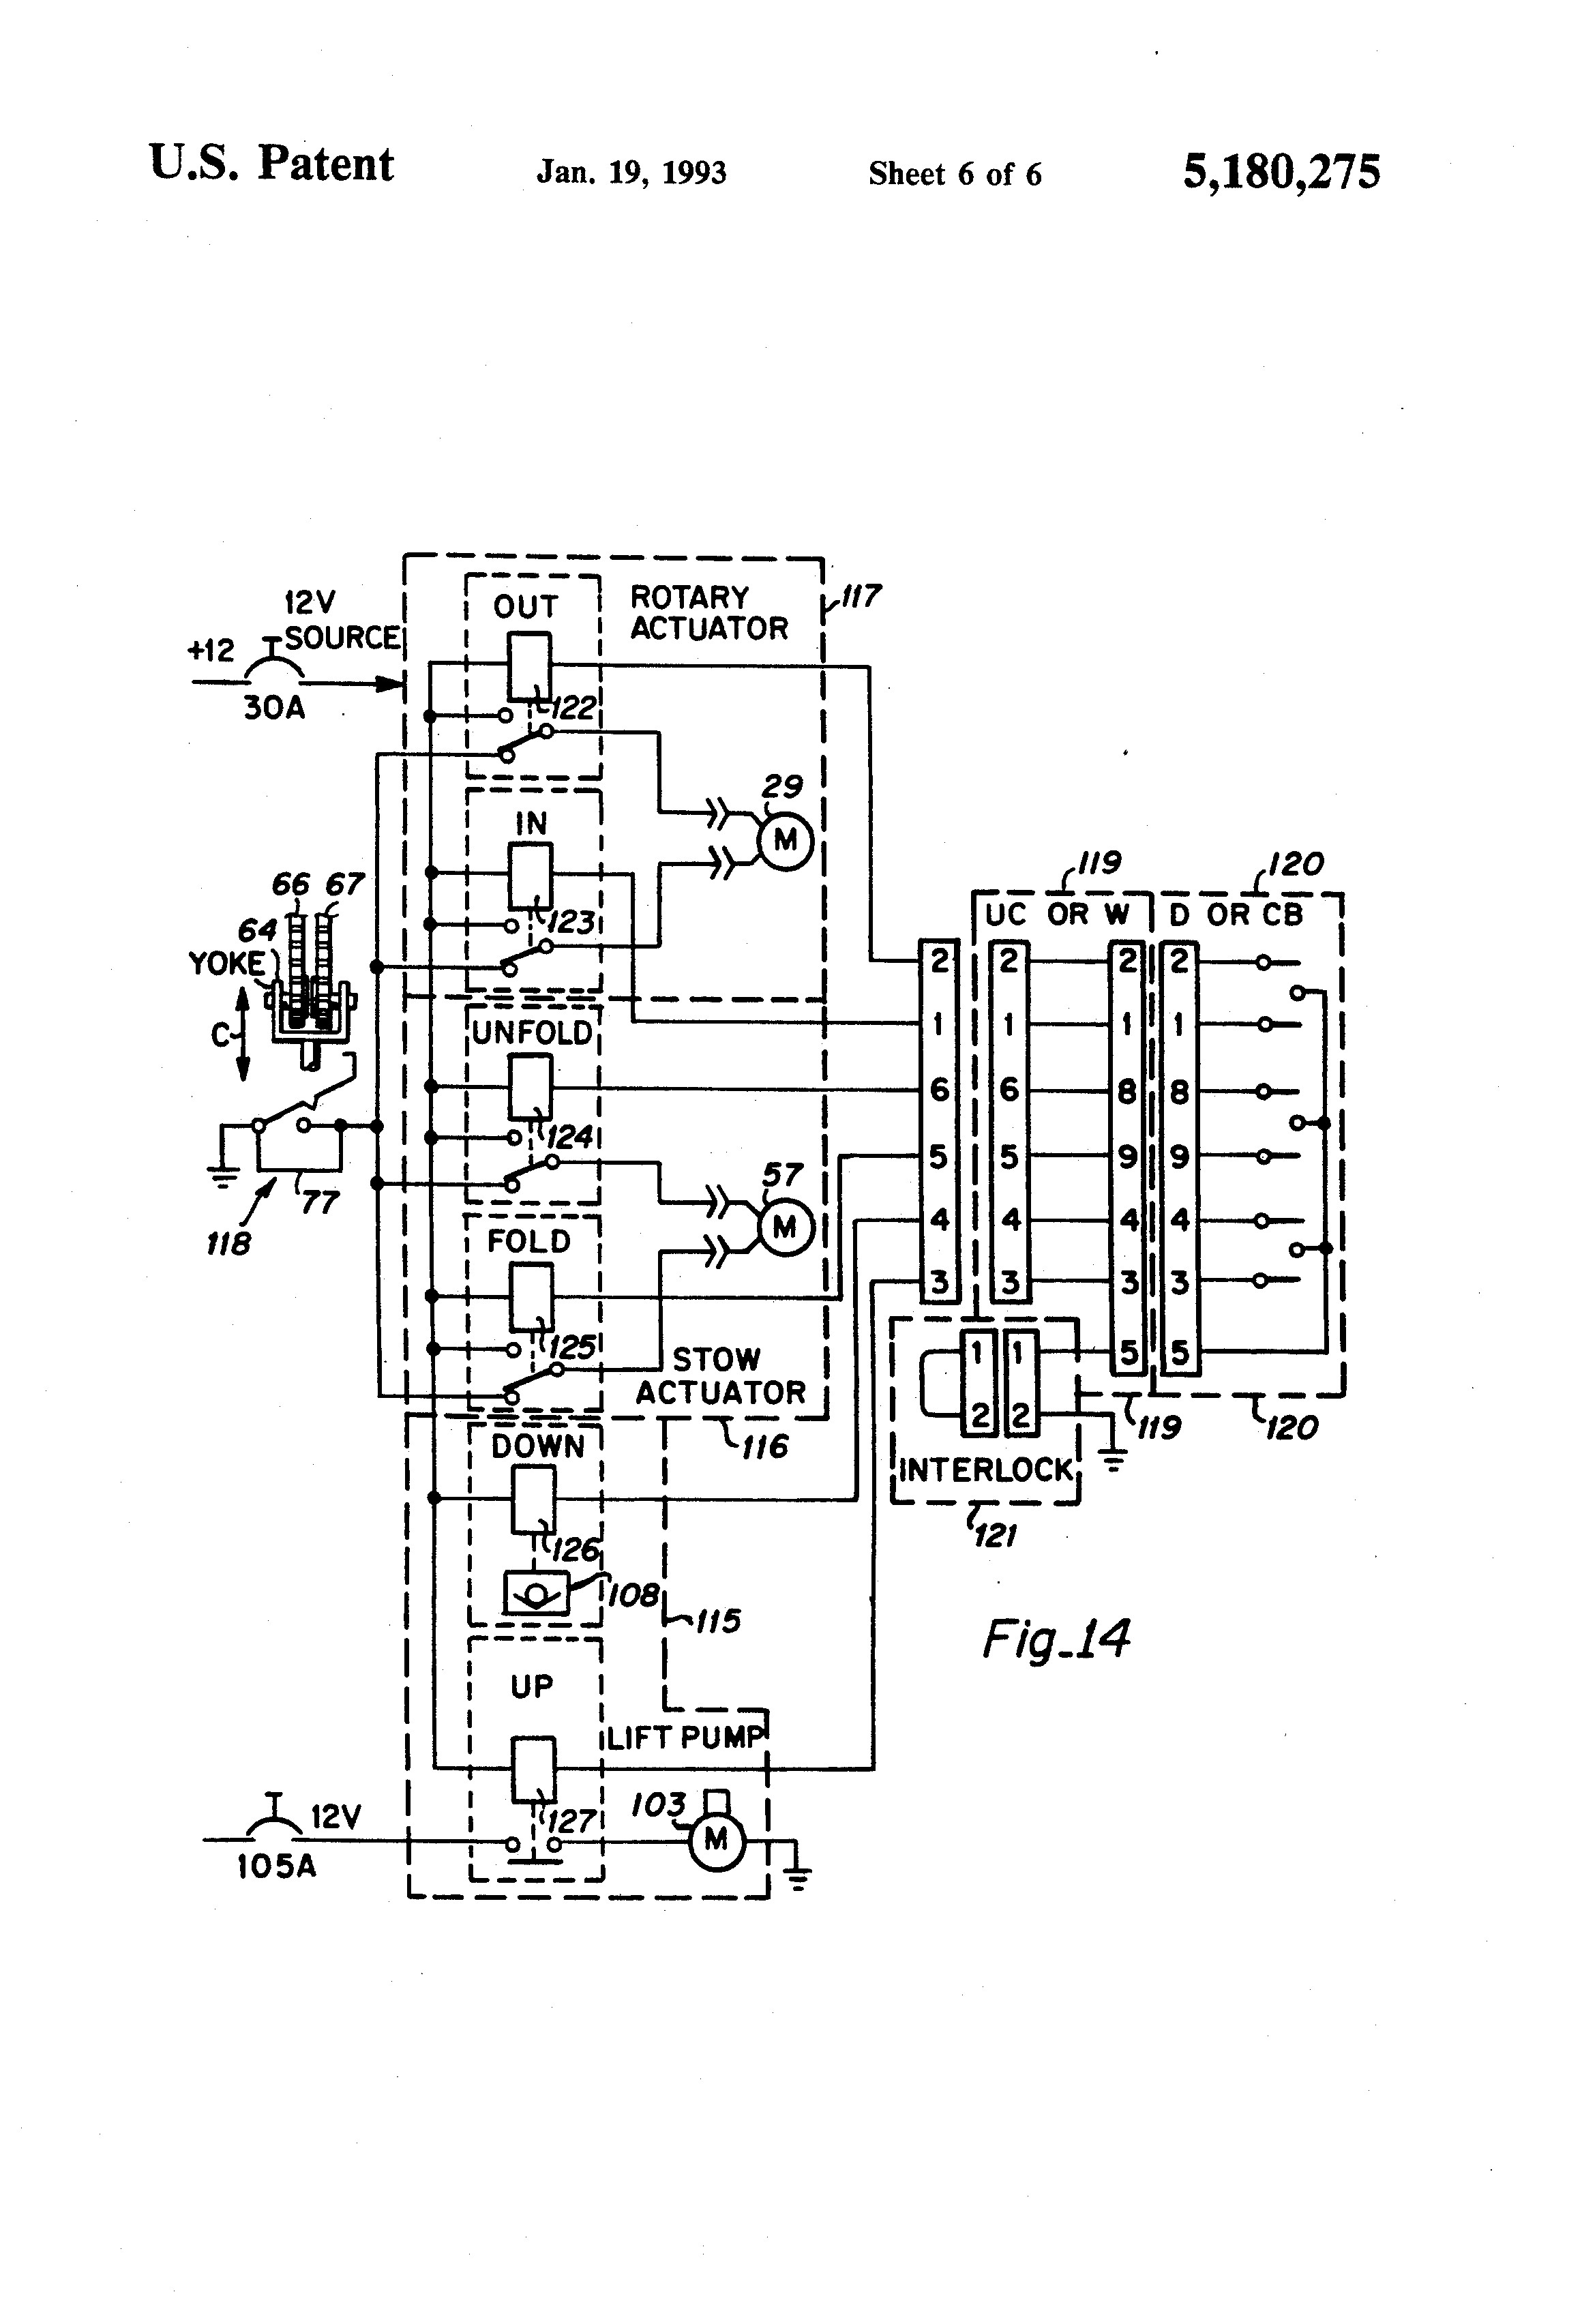 car lifts wiring diagram free picture schematic wiring diagram Car Fan Wiring Diagram wheelchair wiring schematic wiring diagramwheelchair wiring schematic auto electrical wiring diagramjazzy scooter wiring diagram free picture